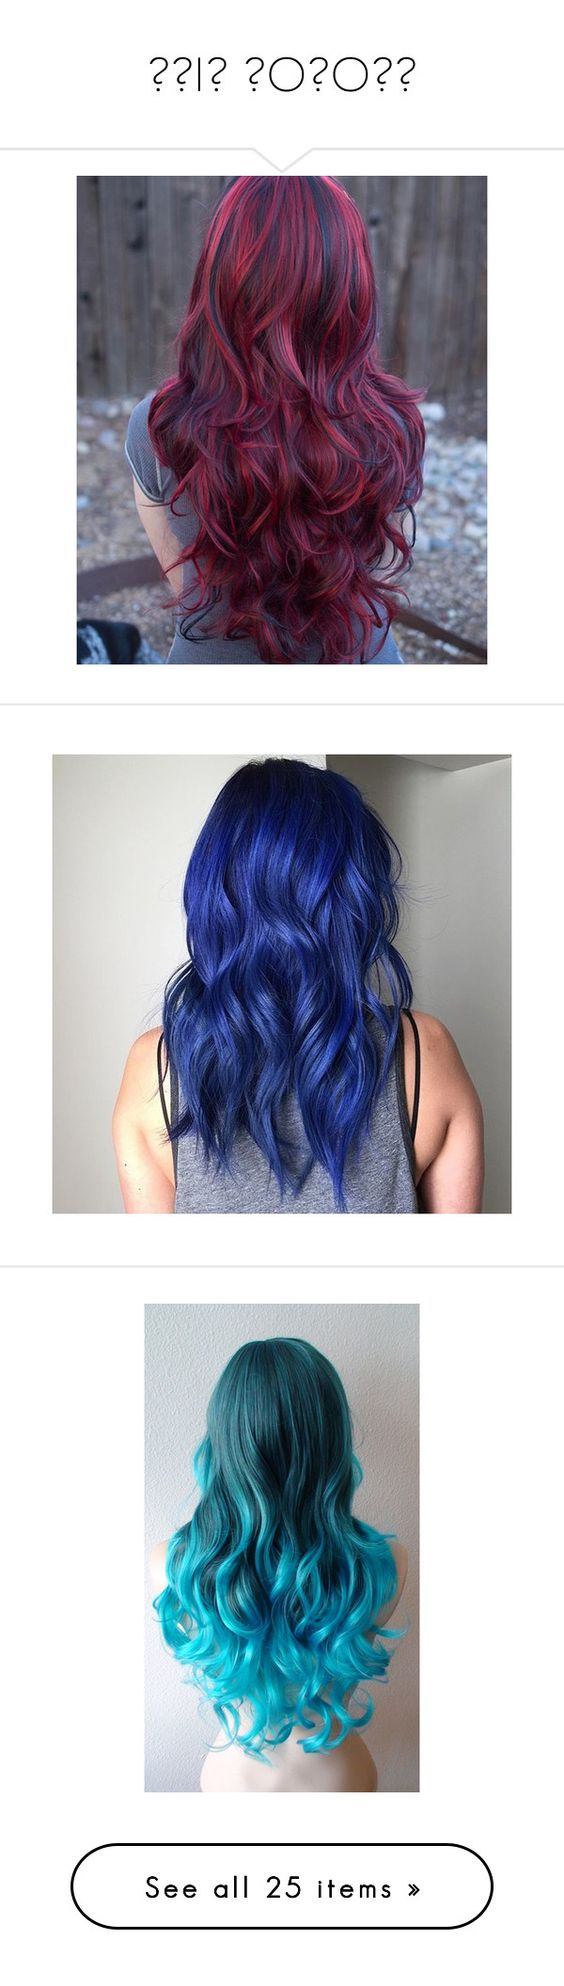 """ᕼᗩIᖇ ᑕOᒪOᖇᔕ"" by ashrose1997 ❤ liked on Polyvore featuring beauty products, haircare, hair styling tools, hair, wig, hair styles, wigs, hairstyles, blue and hair color"